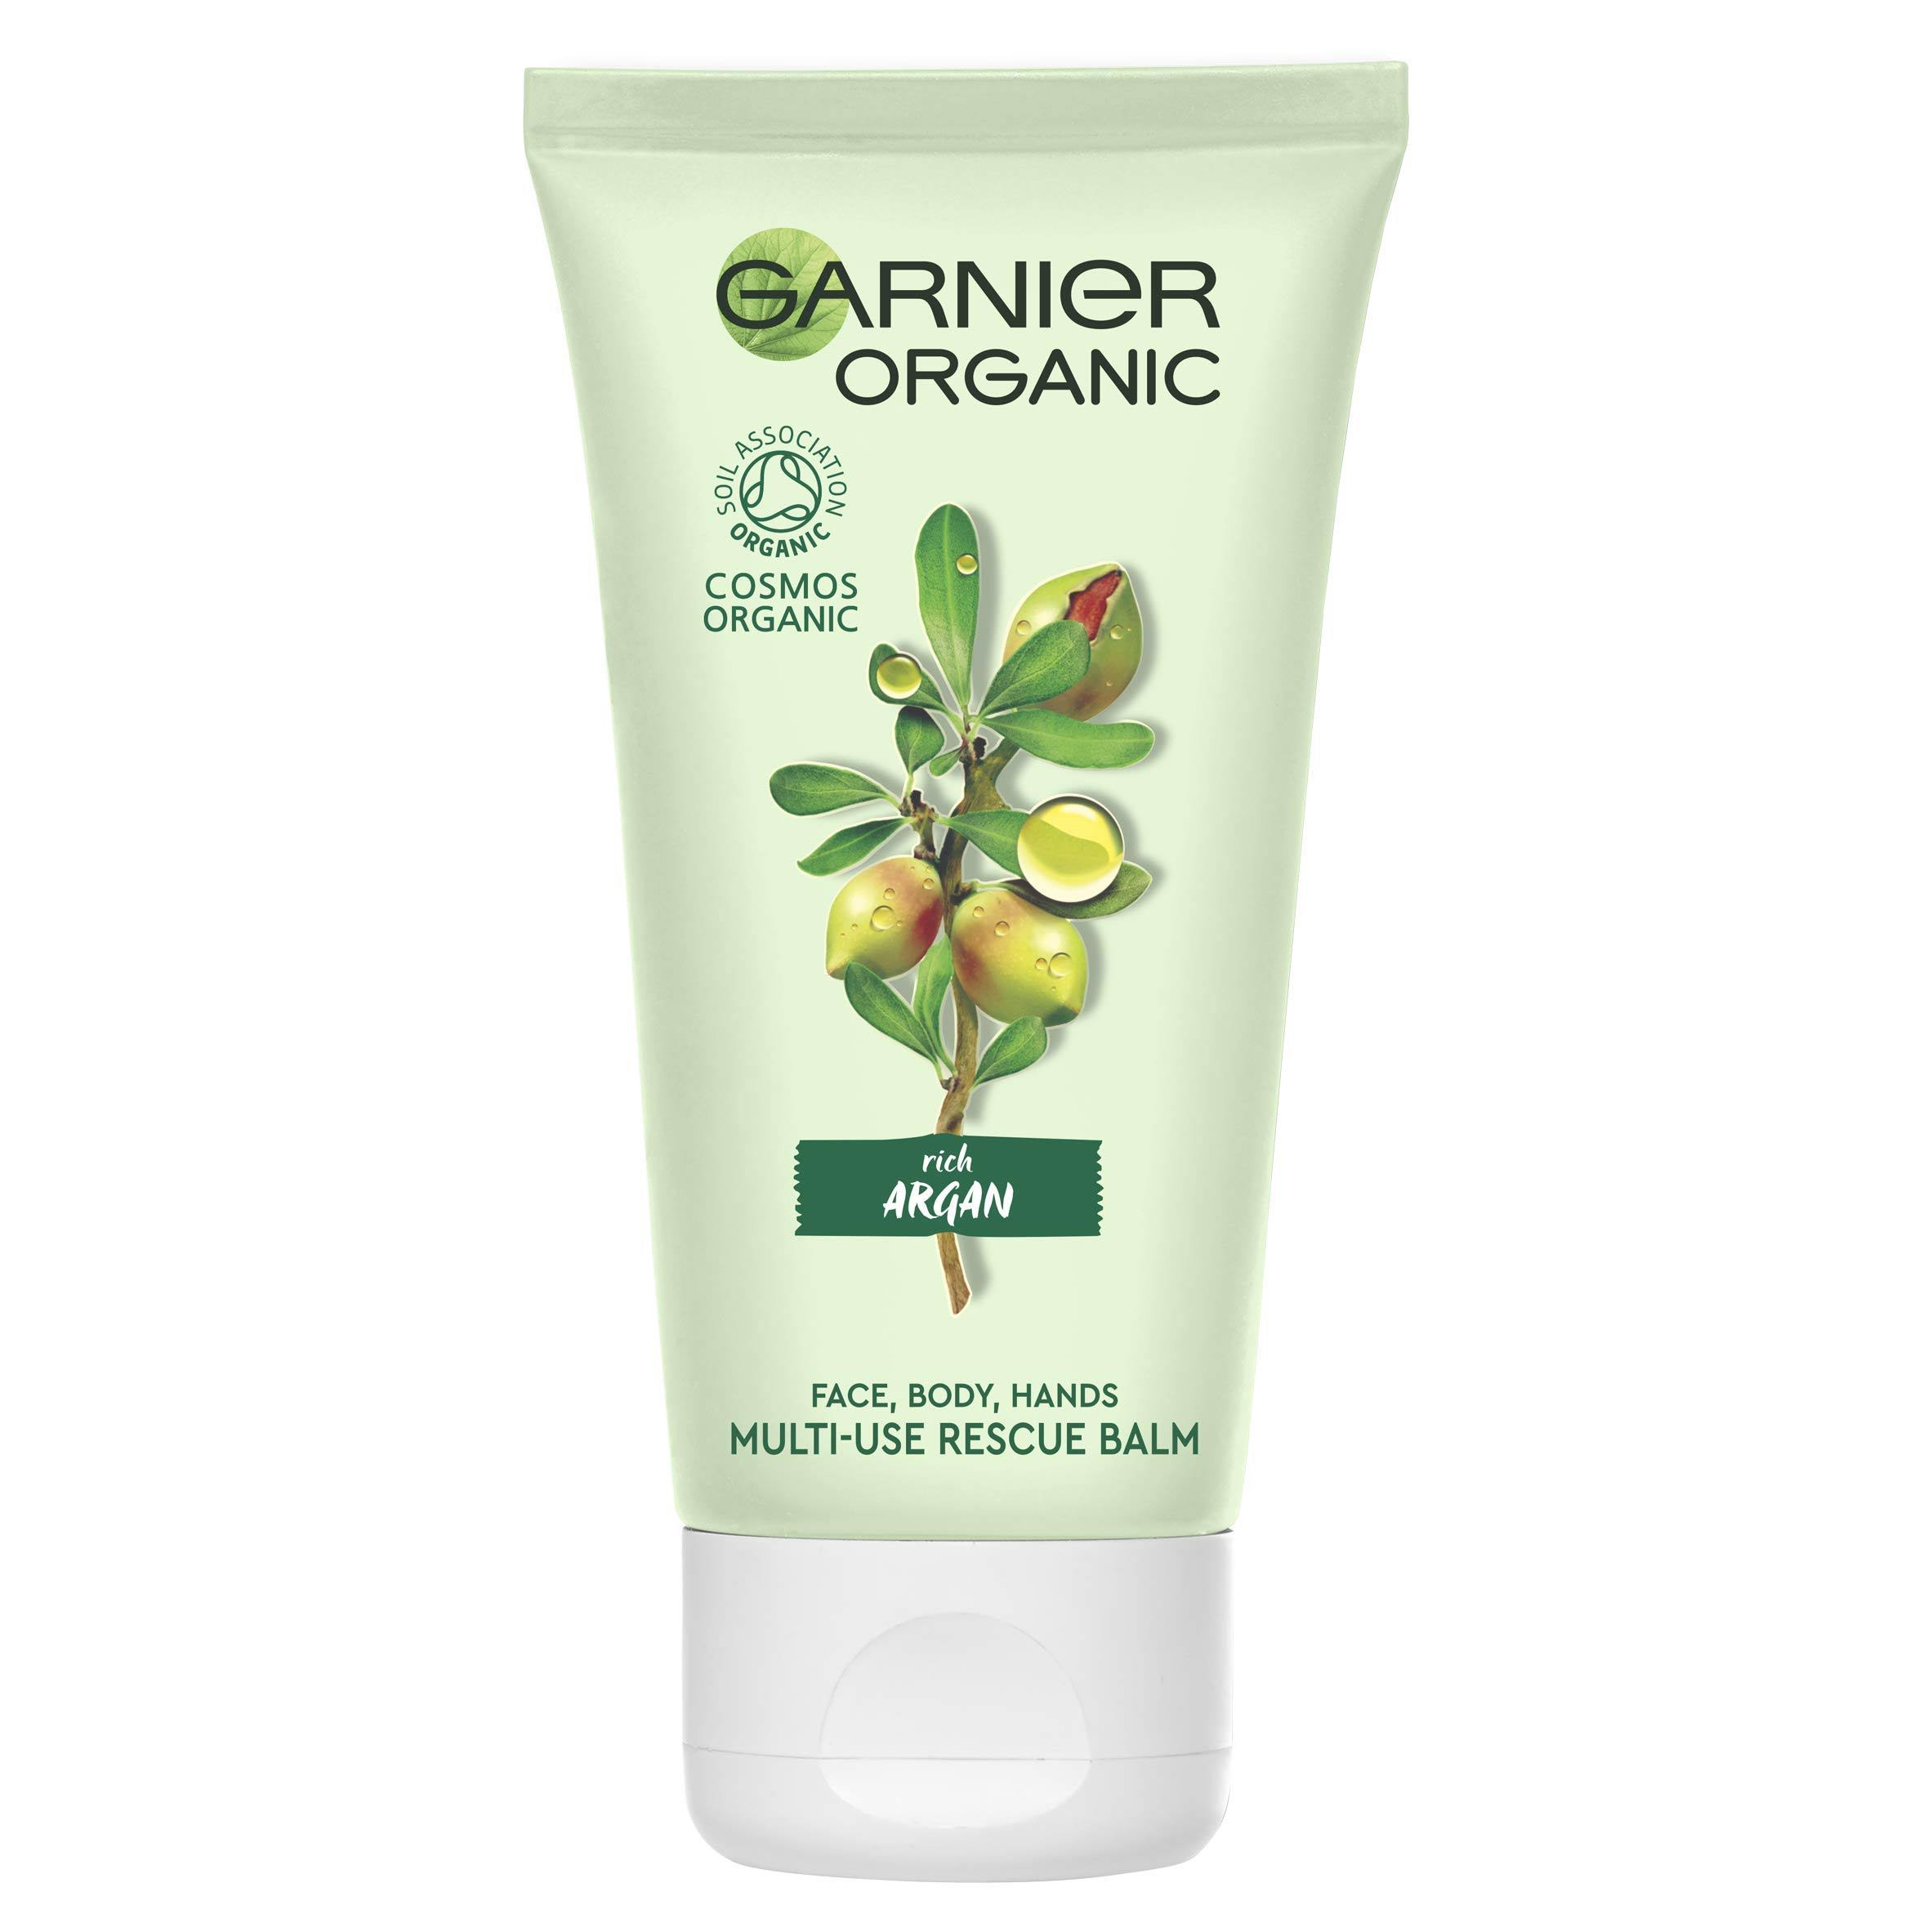 Garnier Organic Argan Rescue Balm - 50ml